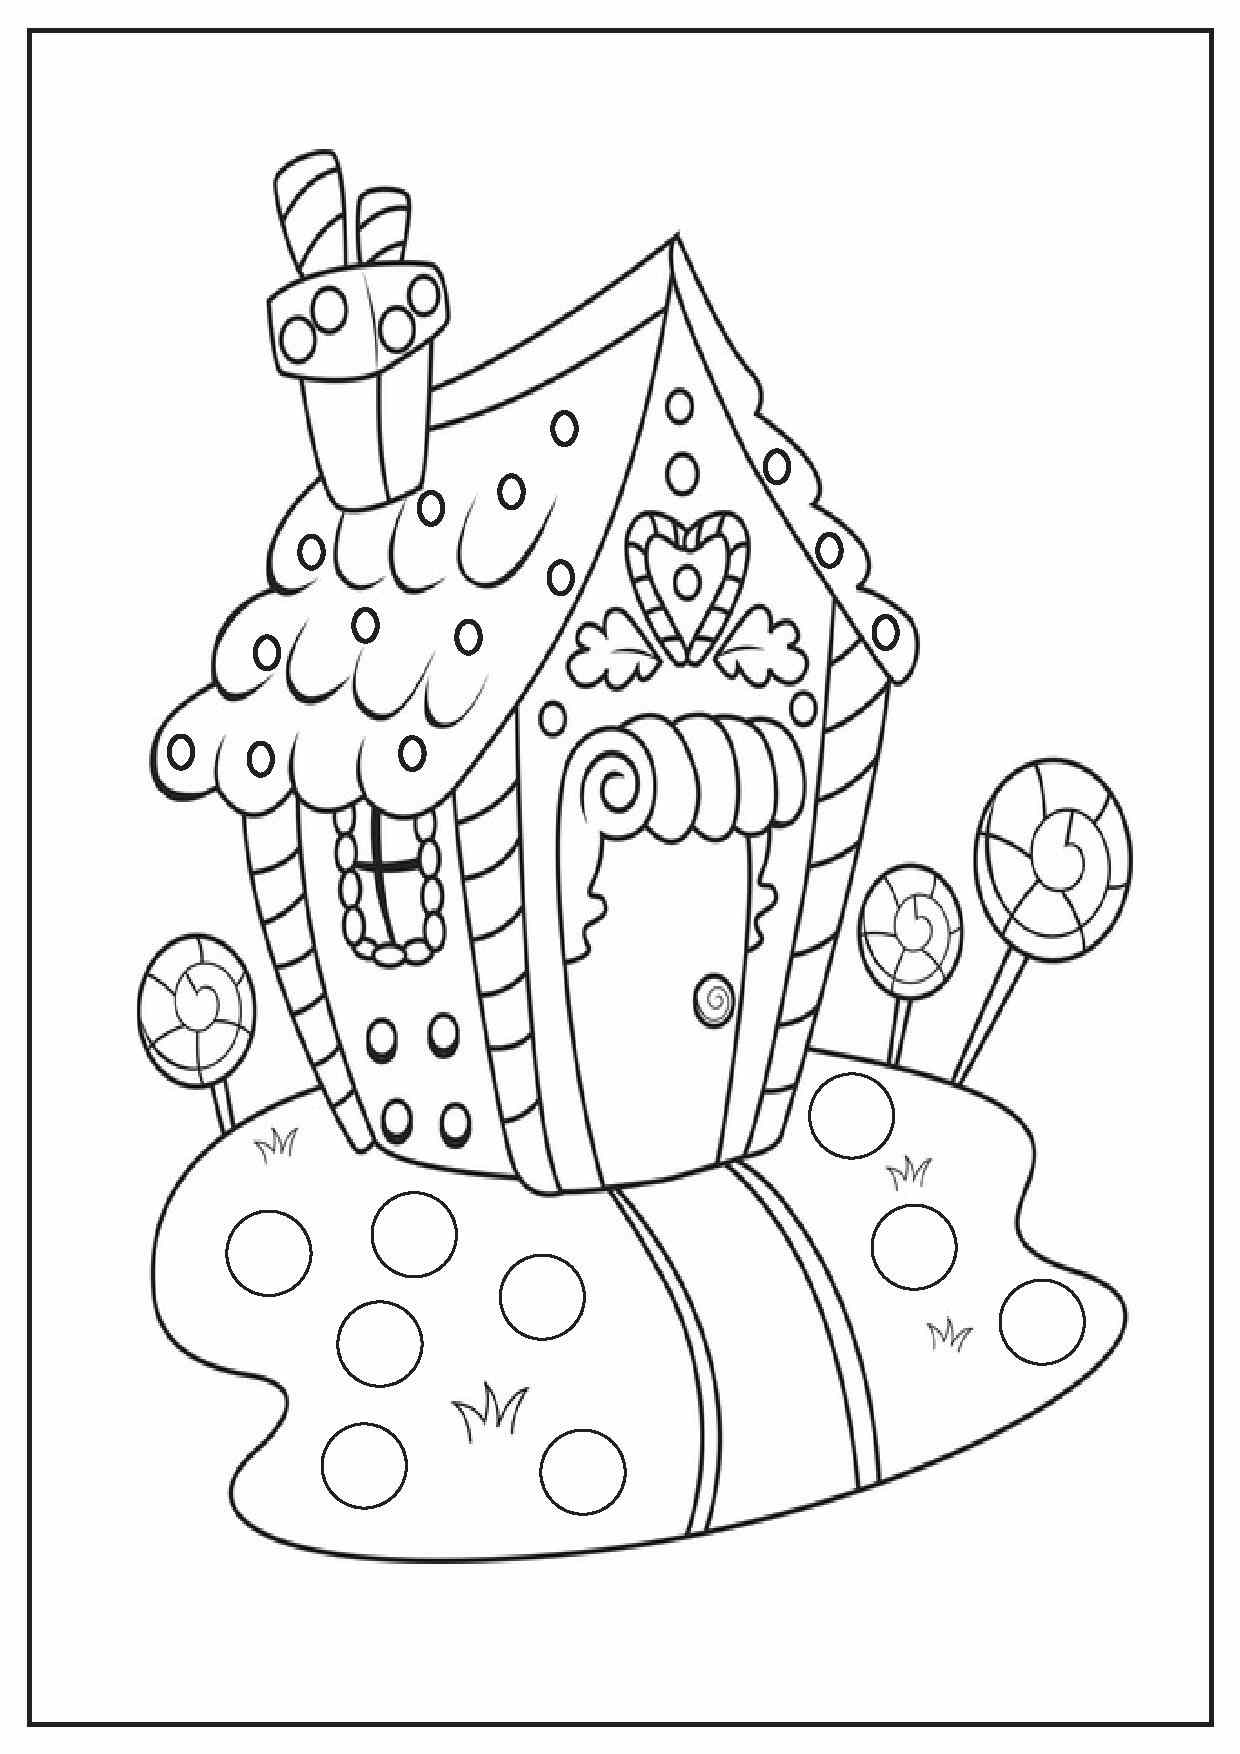 Full Page Christmas Coloring Pages At Getcolorings